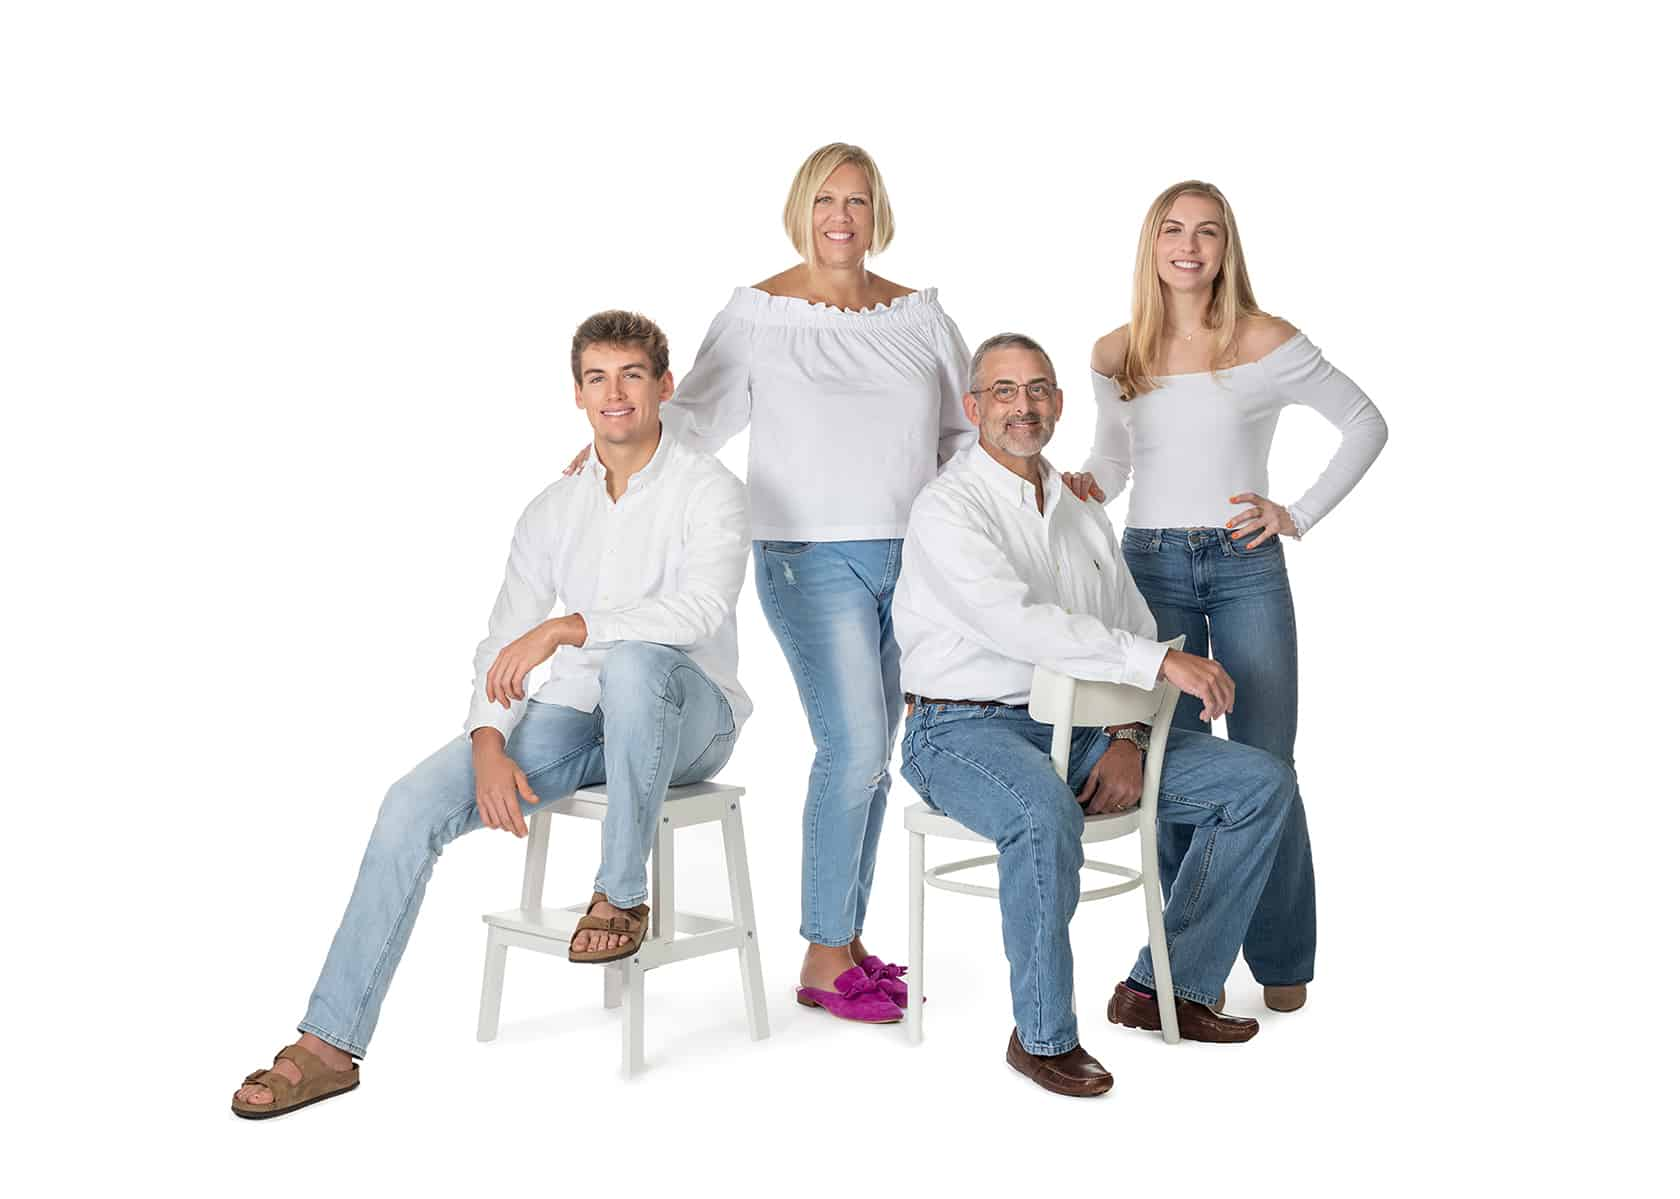 Family photoshoot with teens